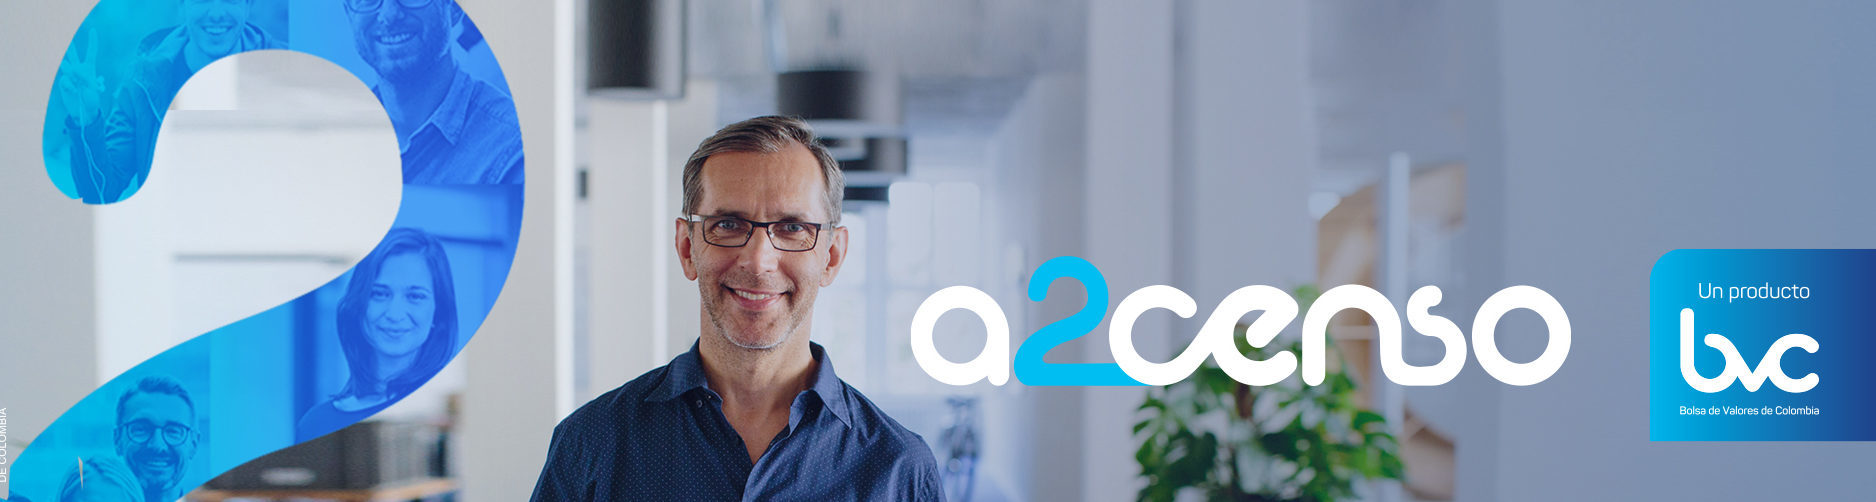 a2censo, Collaborative Financing Platform for SMEs | a2censo, Plataforma de financiación colaborativa para Pymes